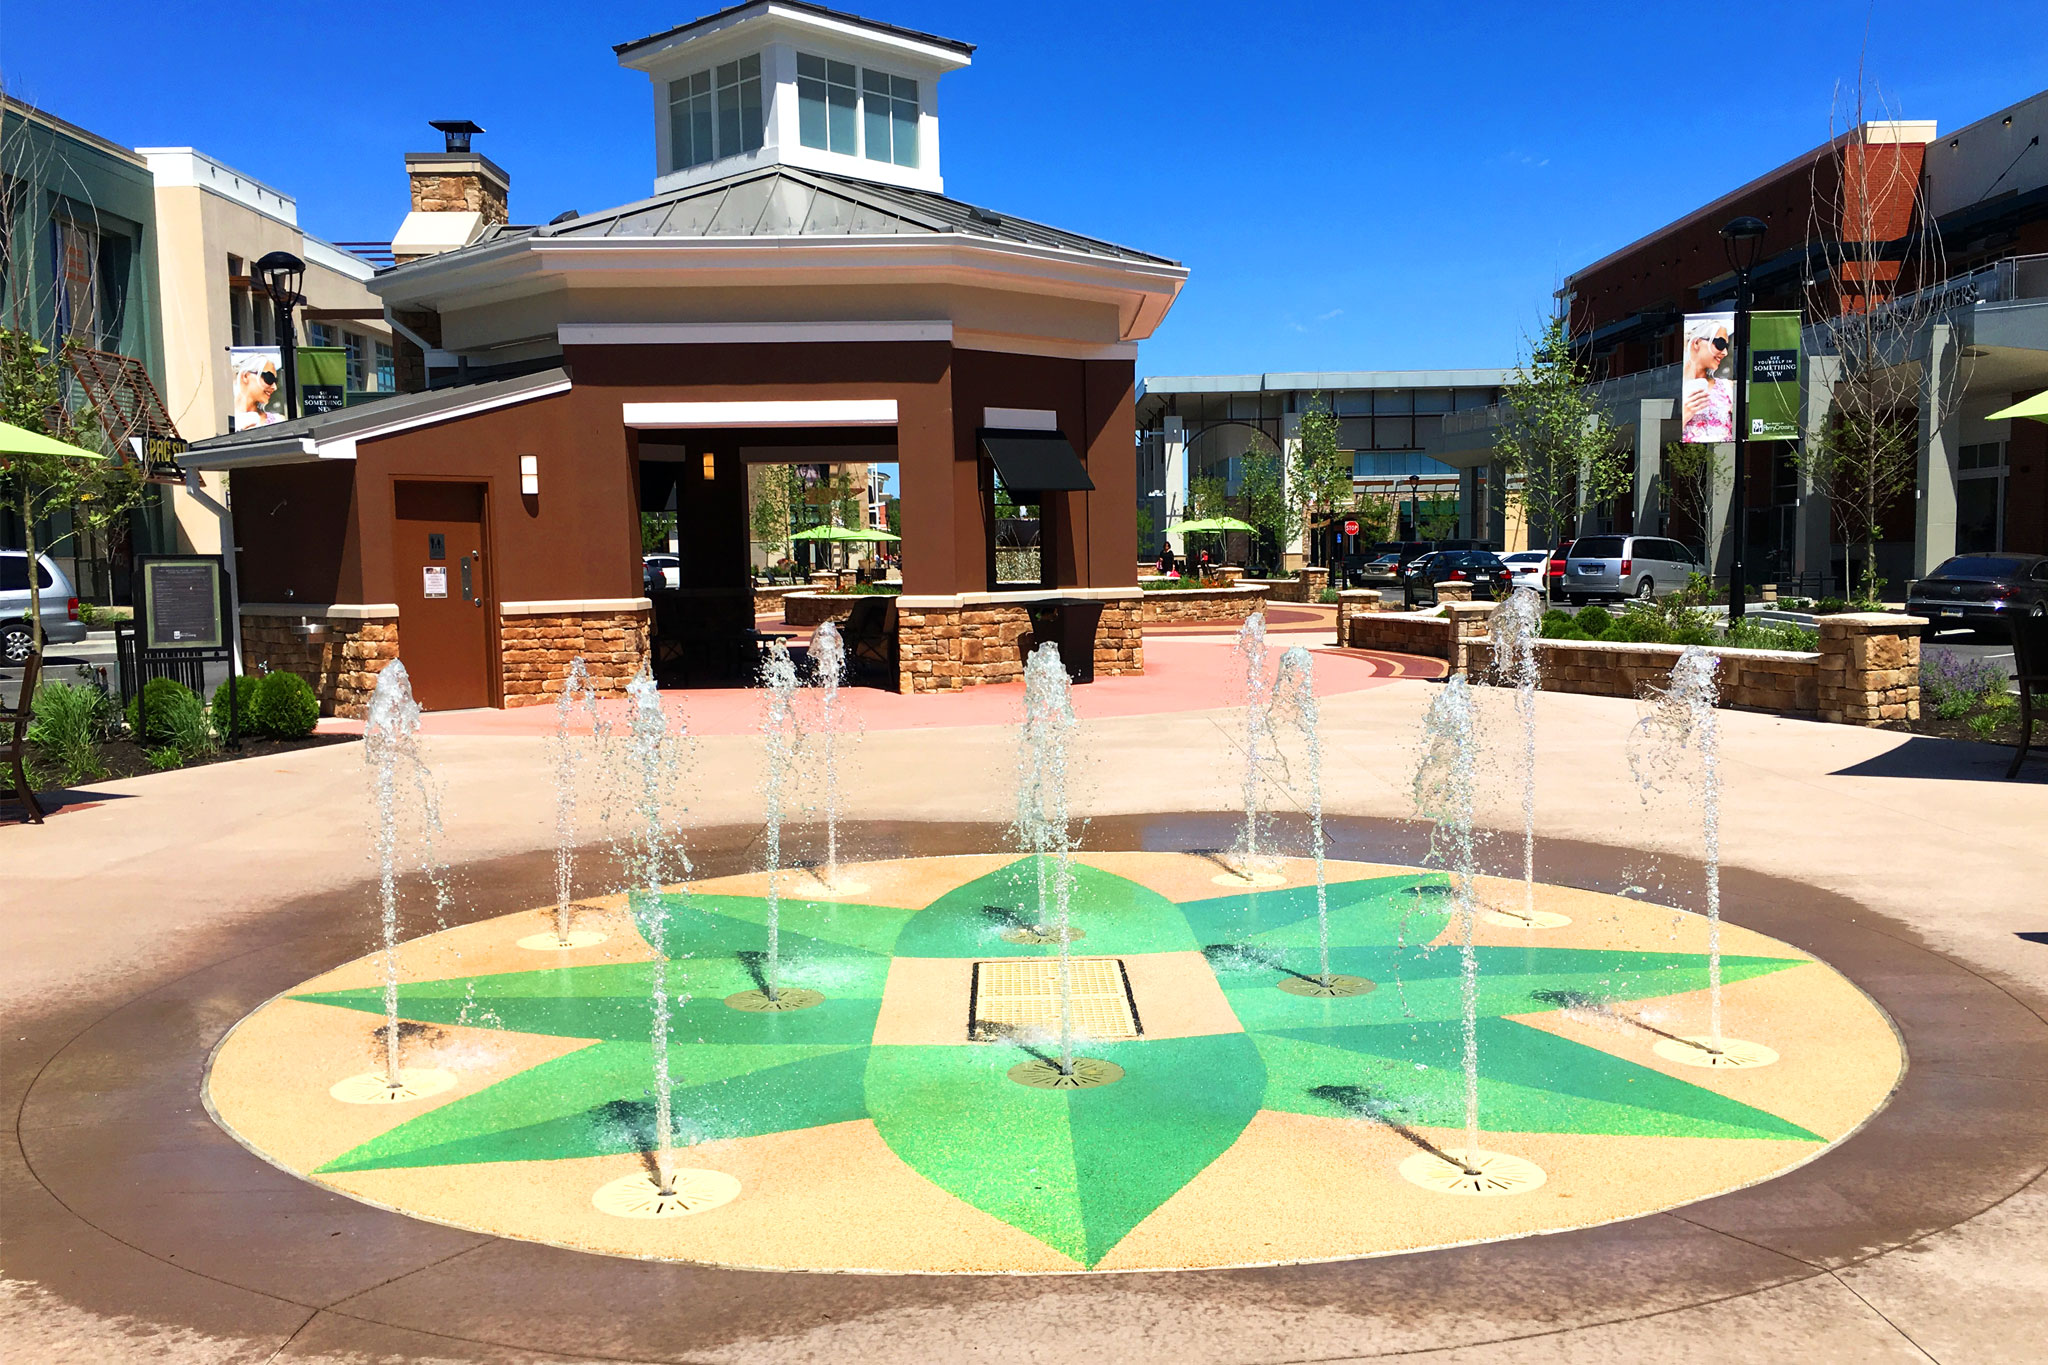 Splash Pad in Retail Landscape Architecture Design